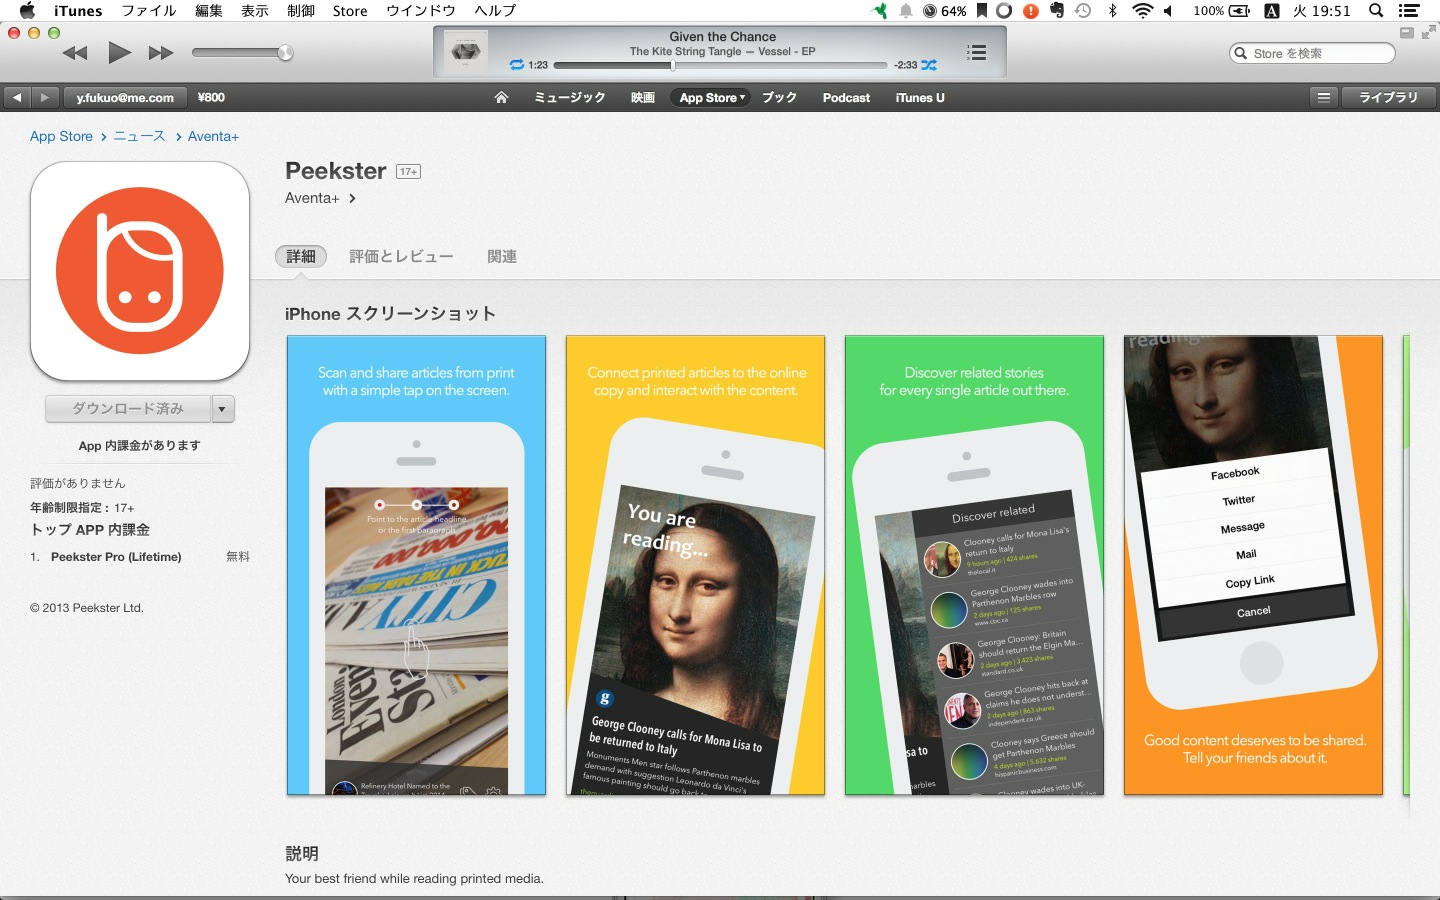 Peekster on iTunes Store